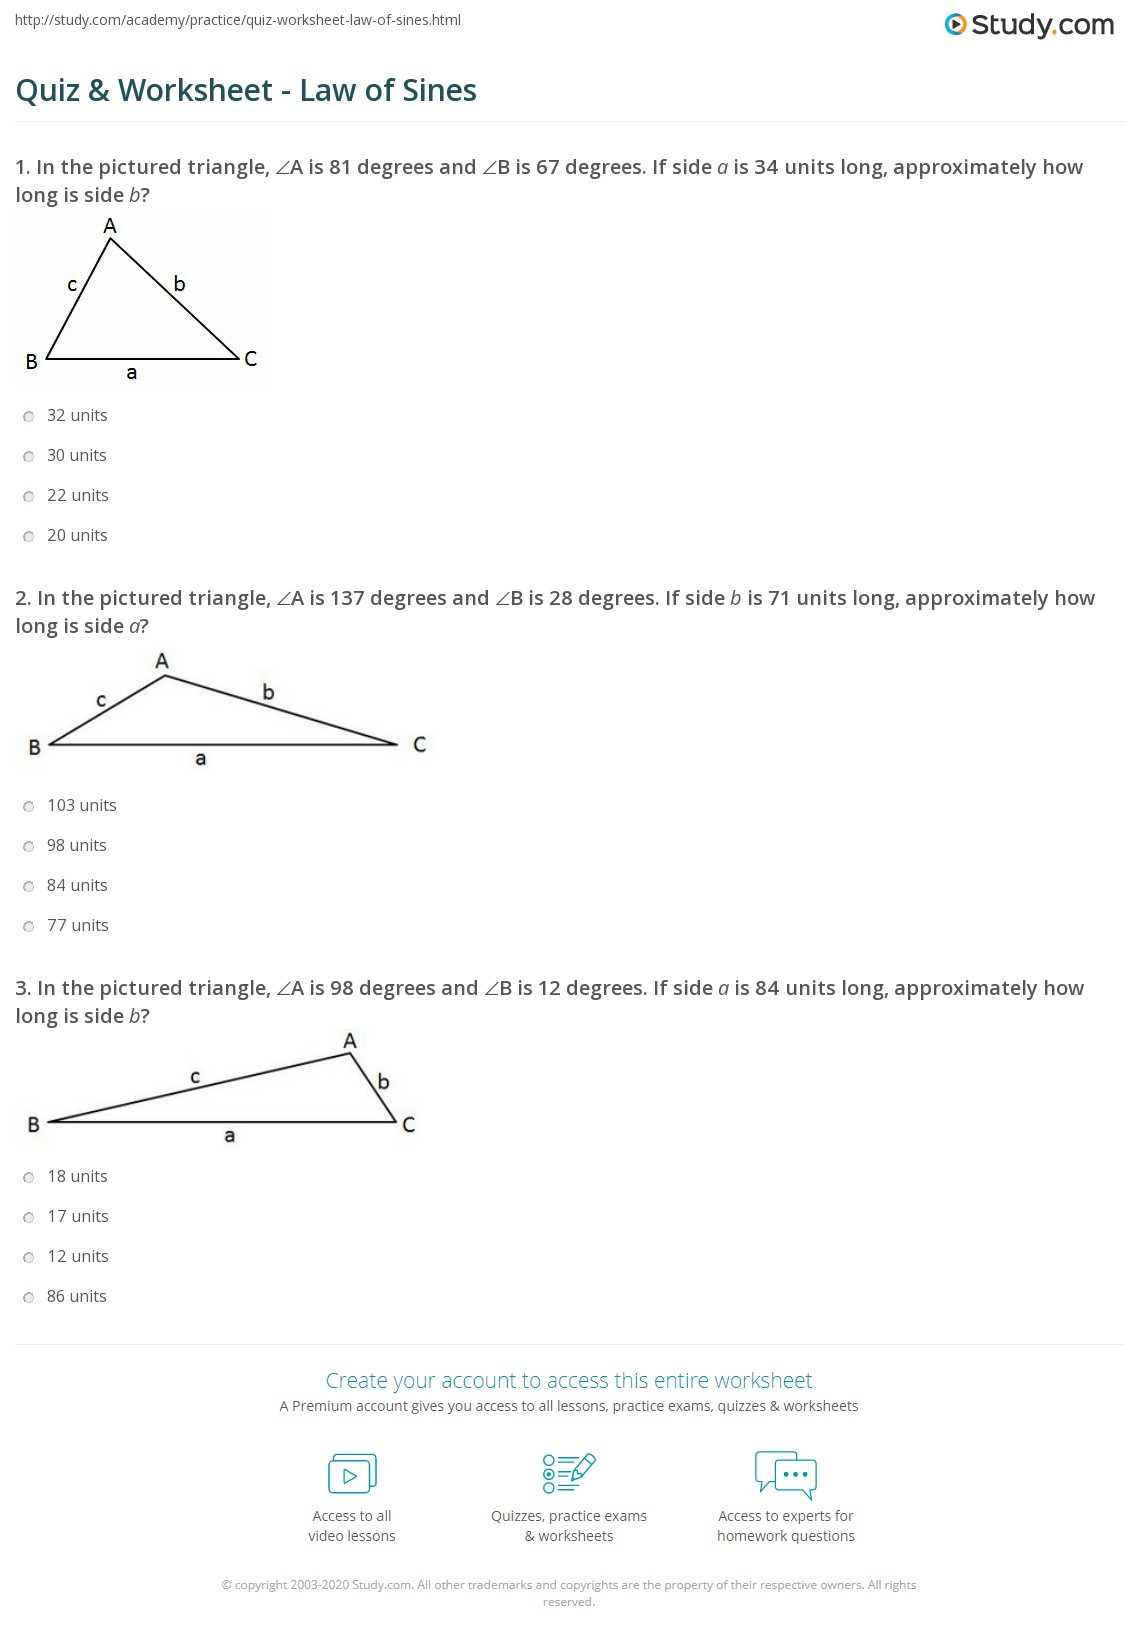 Quiz Worksheet Law of Sines – Law of Sines Worksheet